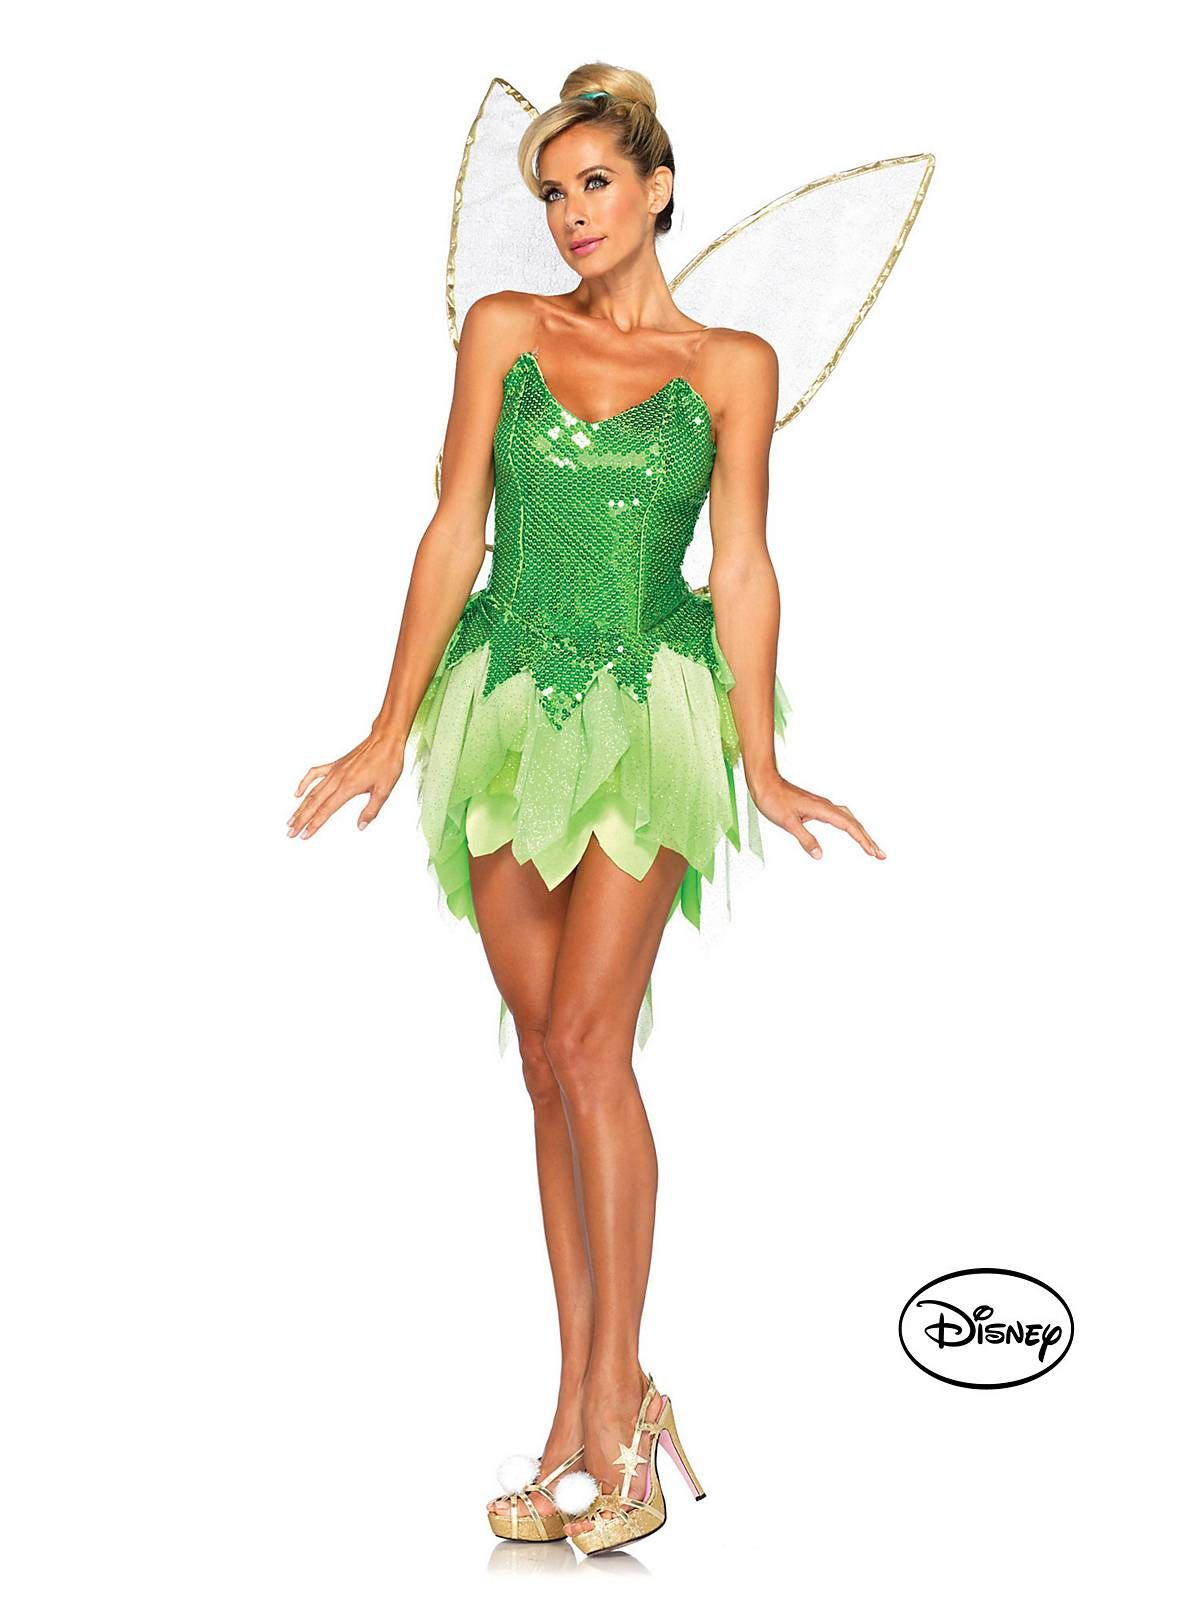 Peter Panu0027s Pixie Dust Tinker Bell Deluxe Costume | Cheap Disney Costumes for Adults  sc 1 st  Pinterest & Peter Panu0027s Pixie Dust Tinker Bell Deluxe Costume | Cheap Disney ...